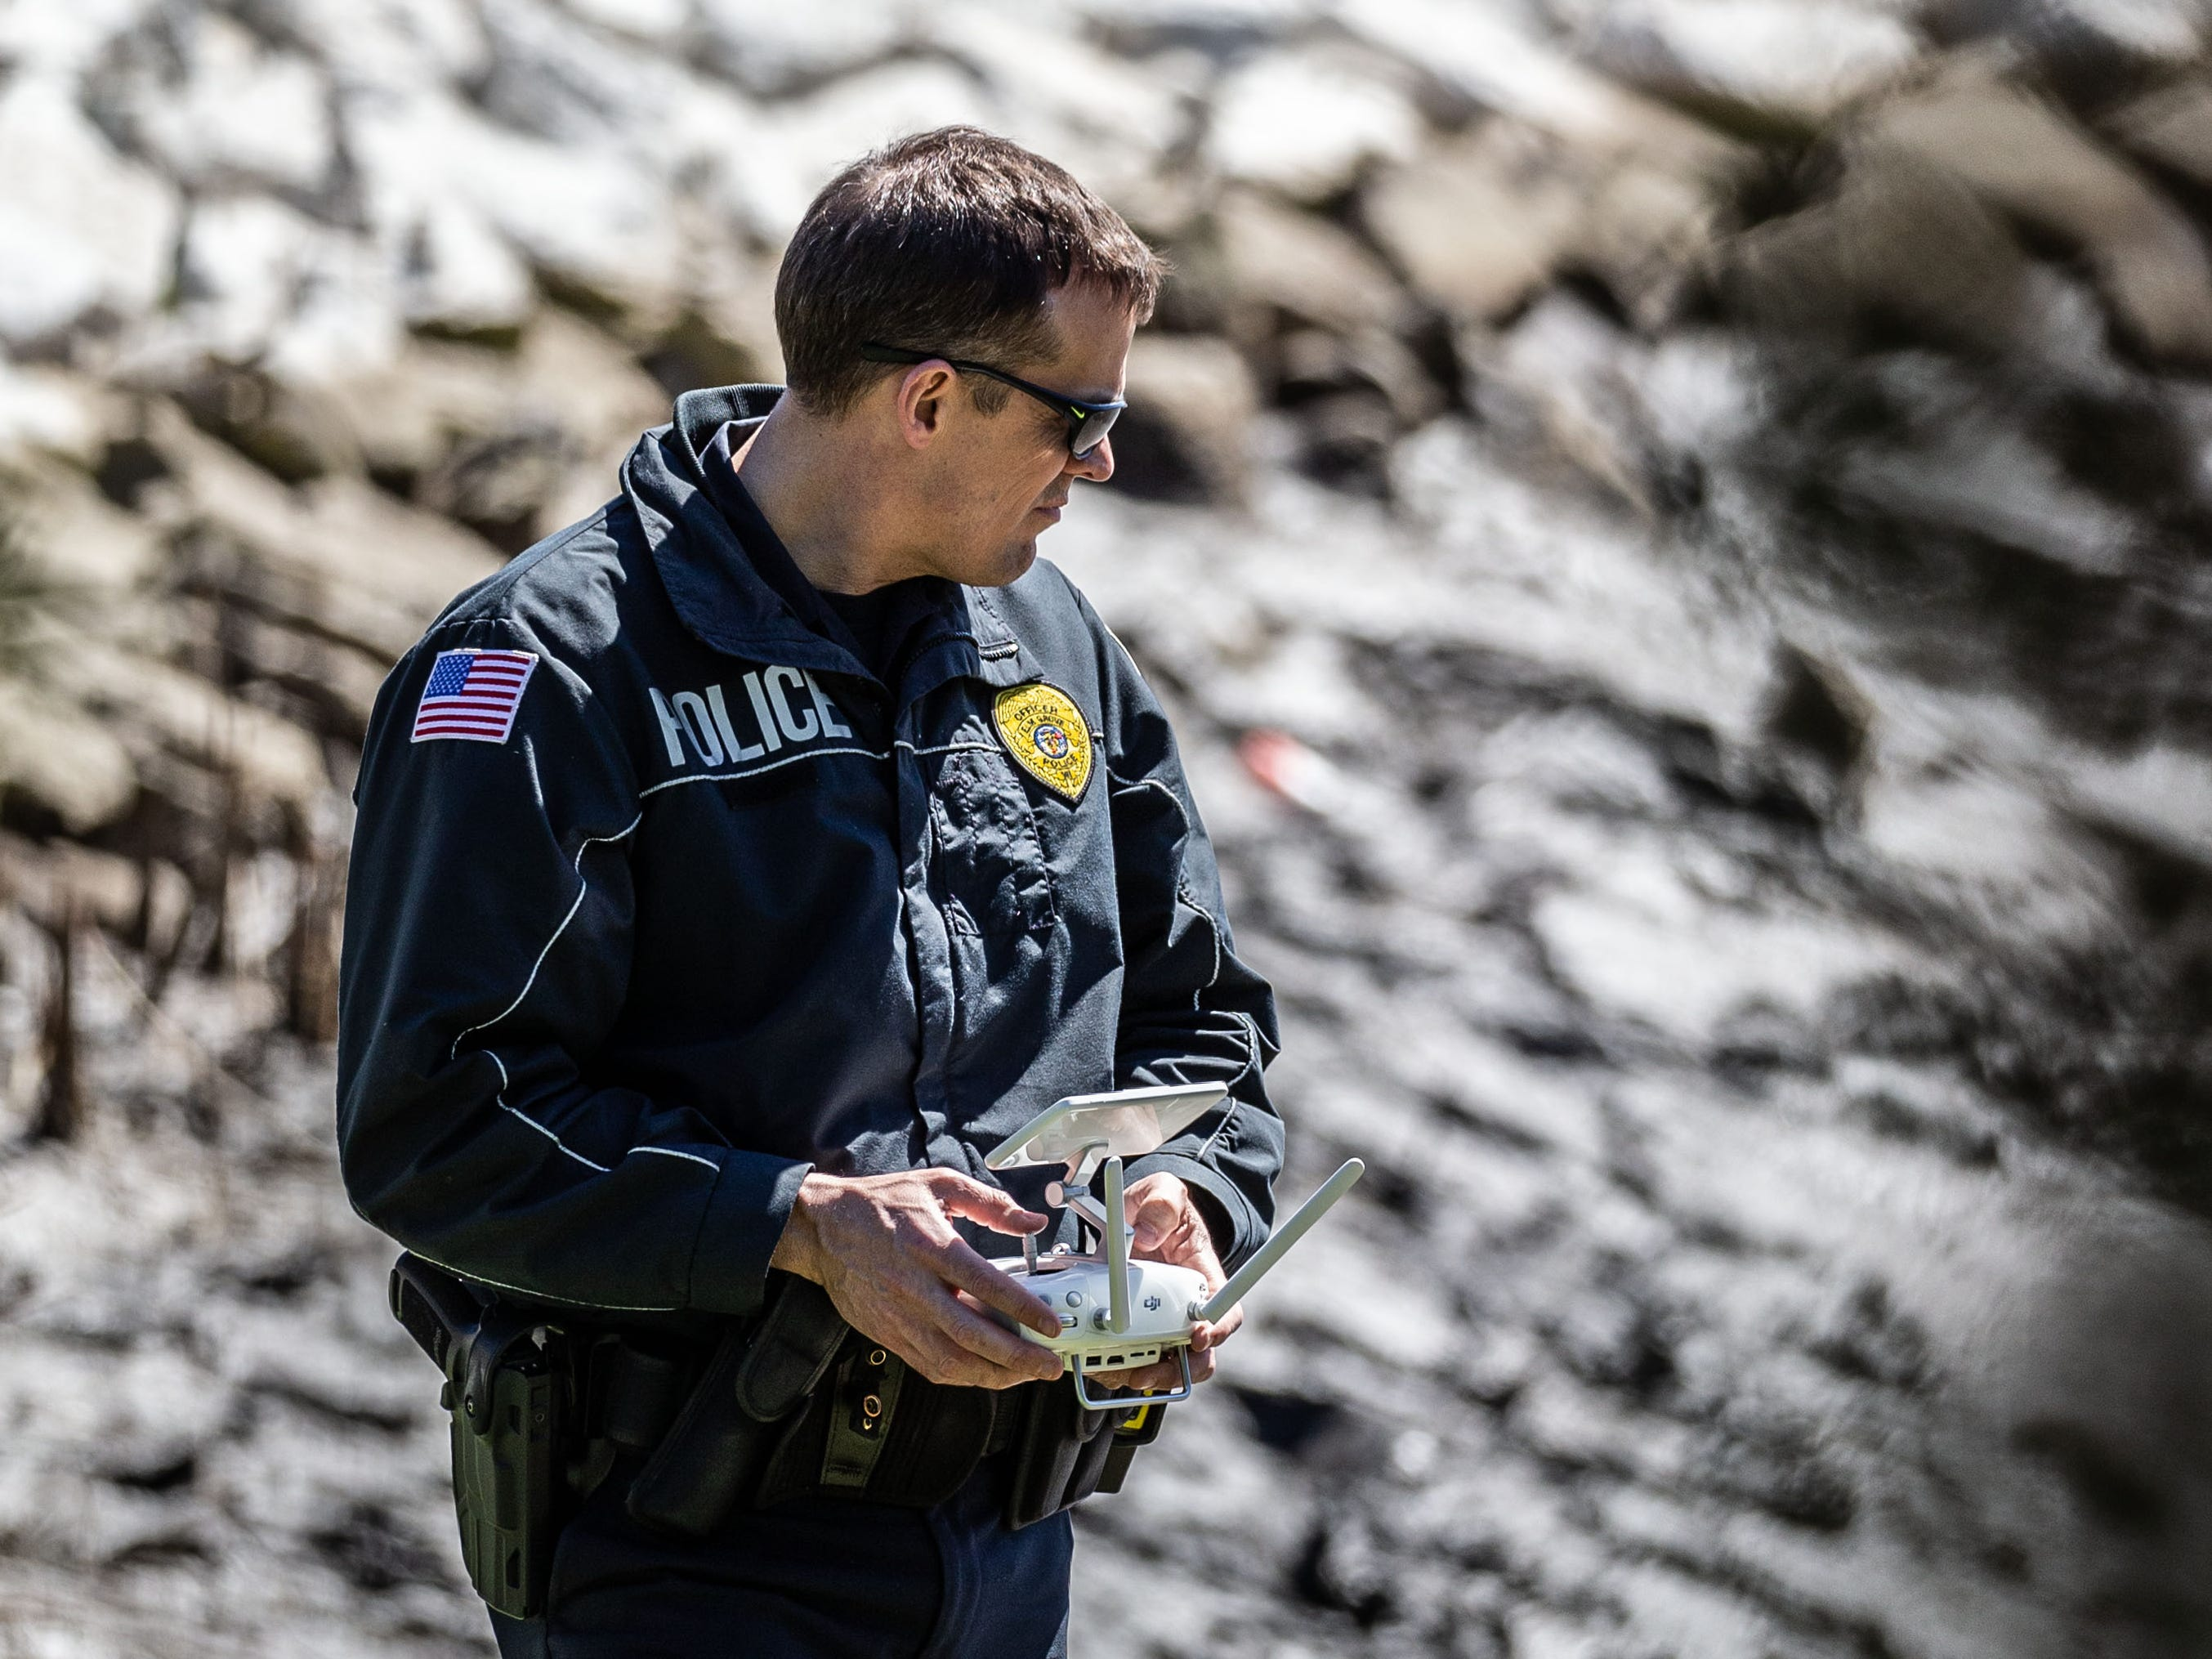 An Elm Grove police officer uses a drone to assist the Town of Brookfield police as they search for evidence in a drained pond at the Brookfield Lake Condominiums on Monday, April 15, 2019. The search is related to a November homicide.